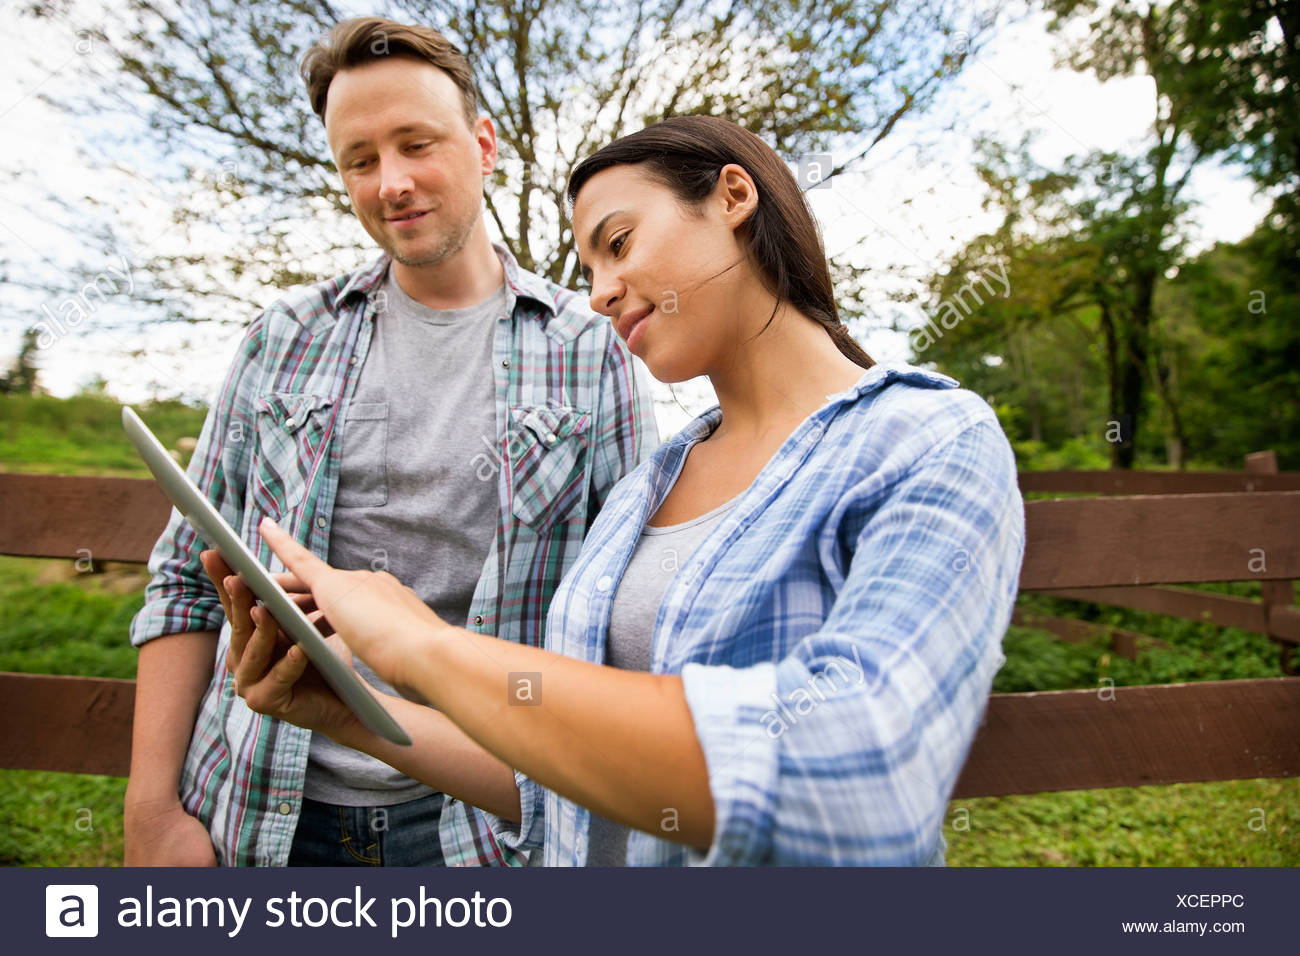 An organic farm in the Catskills. Two people looking at the screen of a digital tablet. - Stock Image